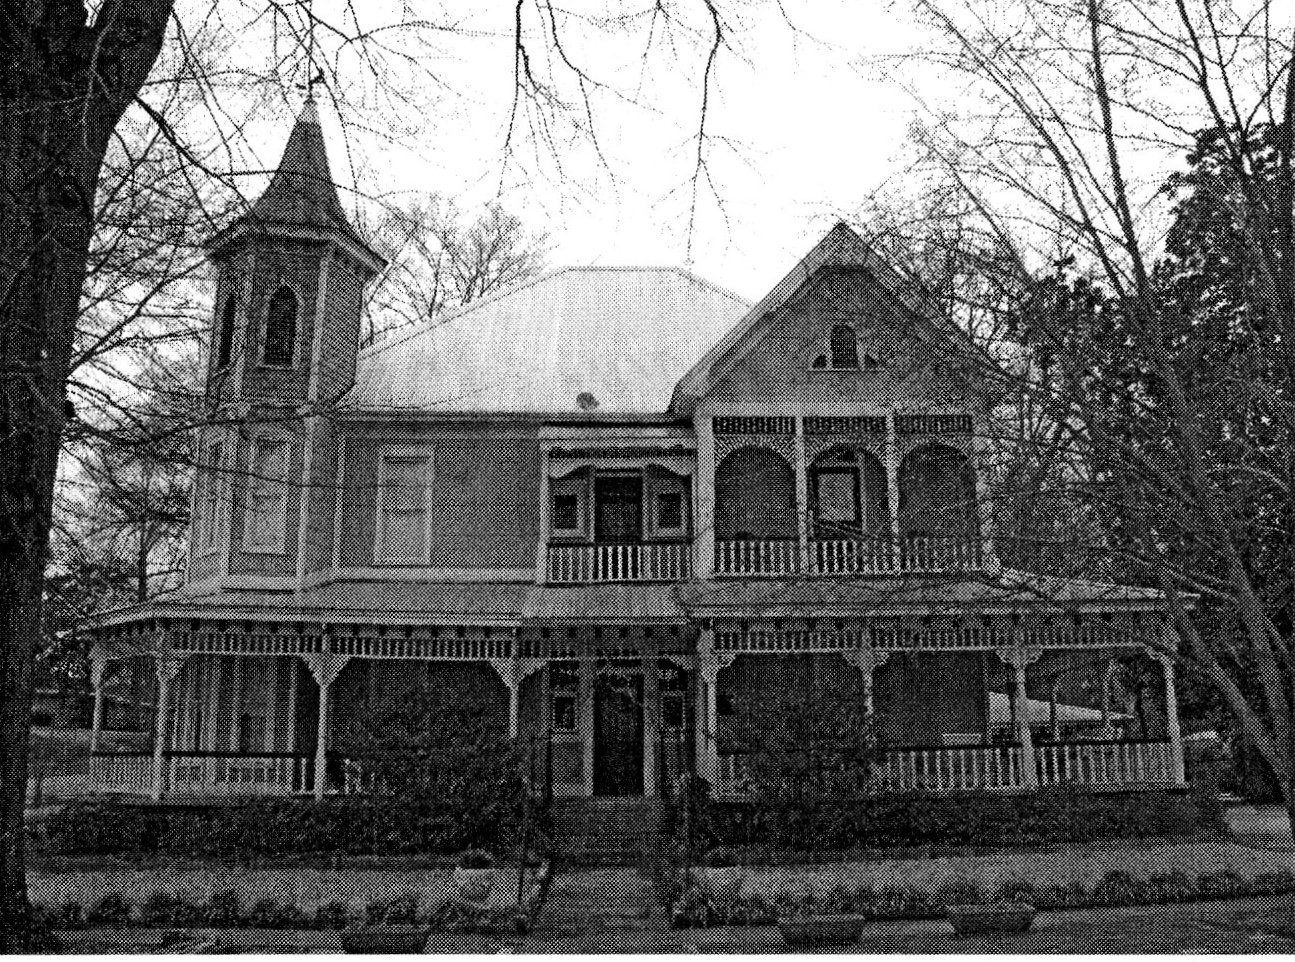 McKibbon House functioning as a bed and breakfast c. 2001.